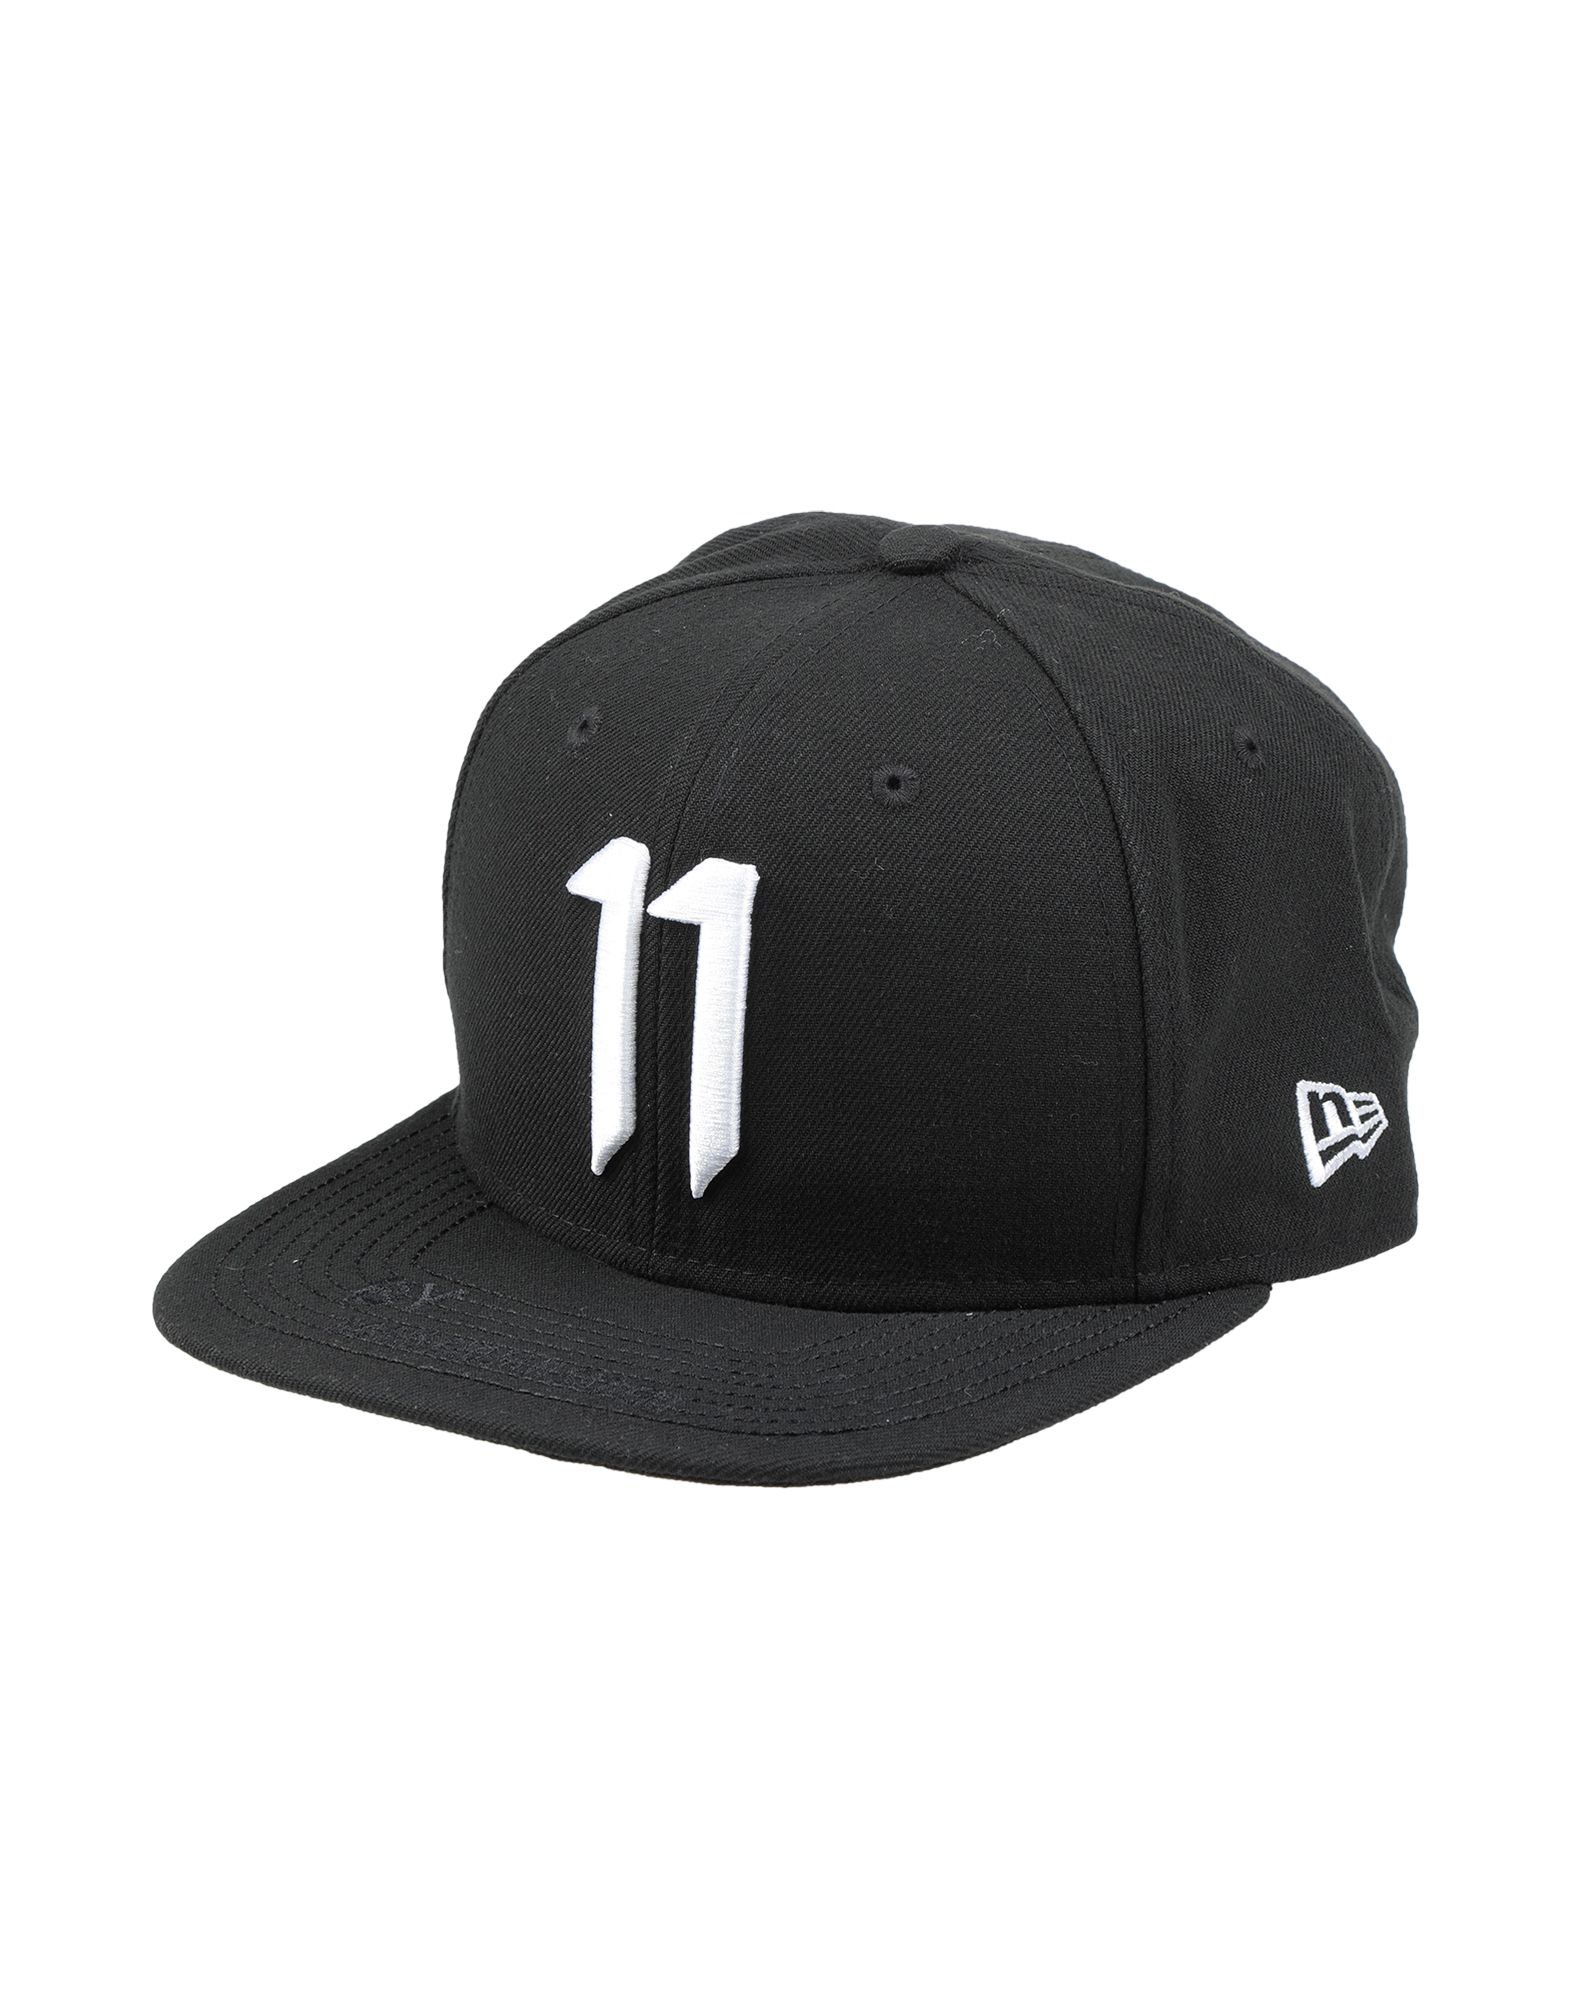 11 By Boris Bidjan Saberi Hat - Men 11 By Boris Bidjan Saberi Hats ... abc3f35c475